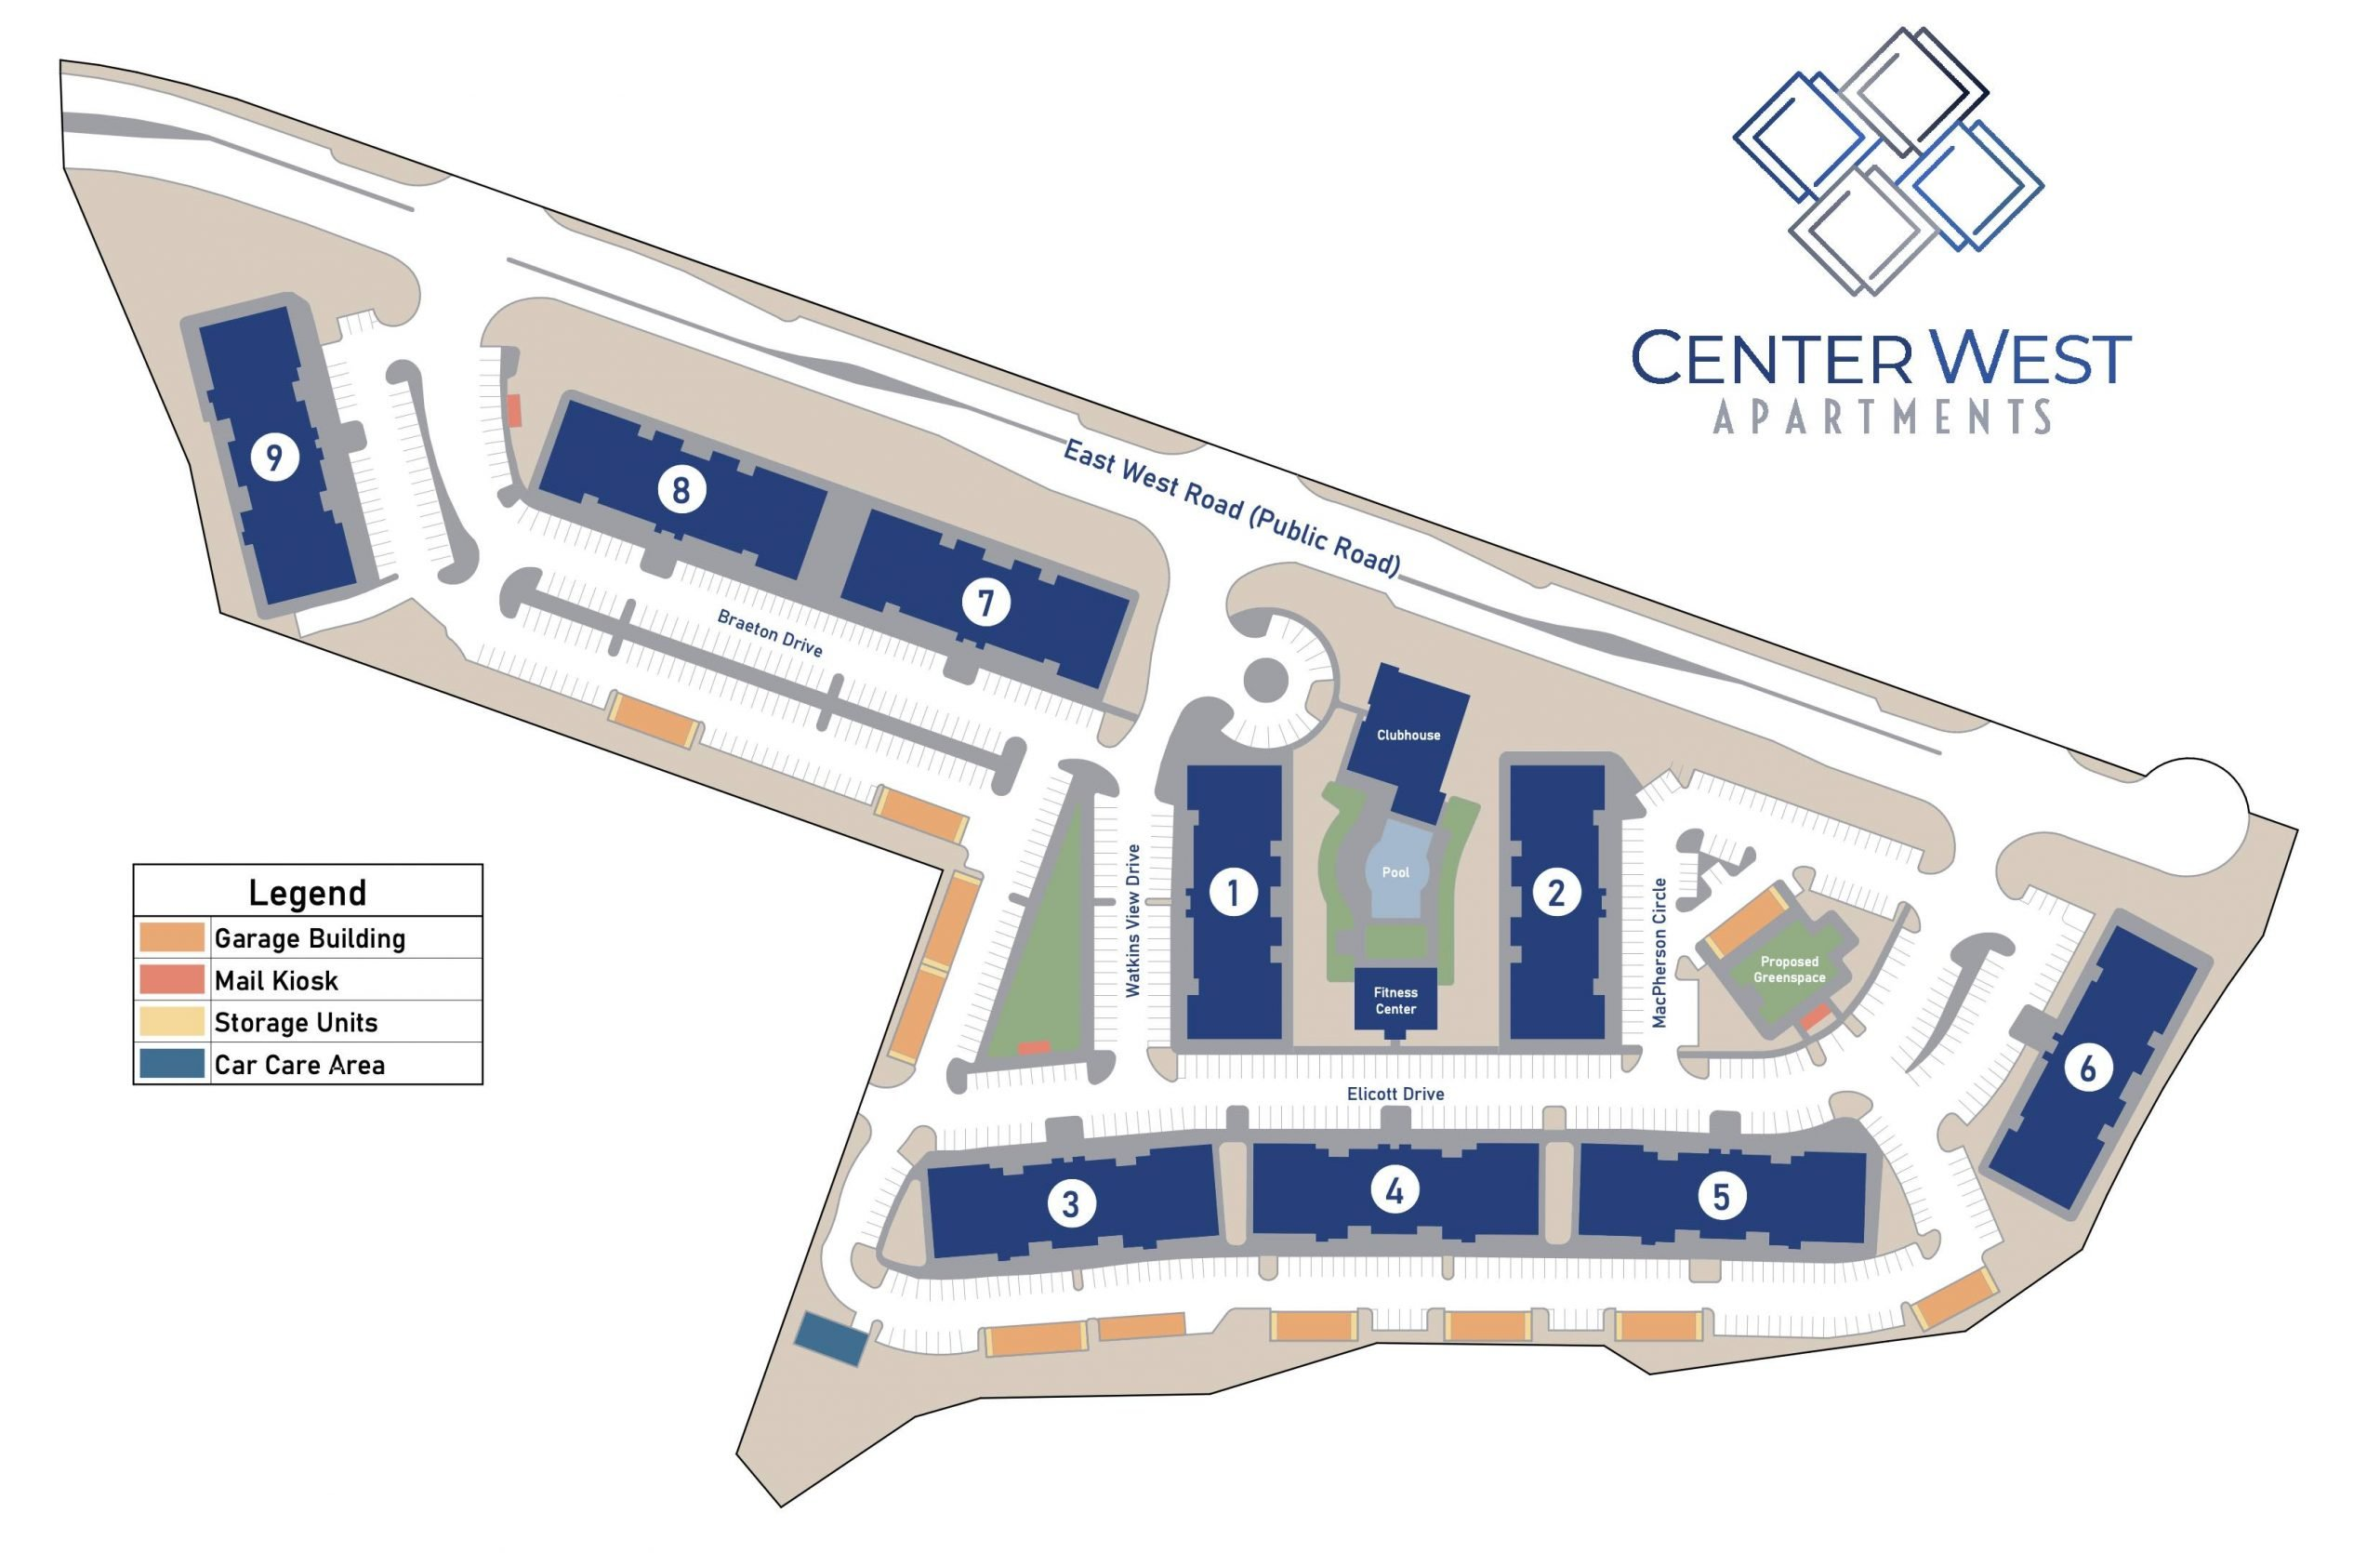 Map of Center West Apartments in Midlothian VA